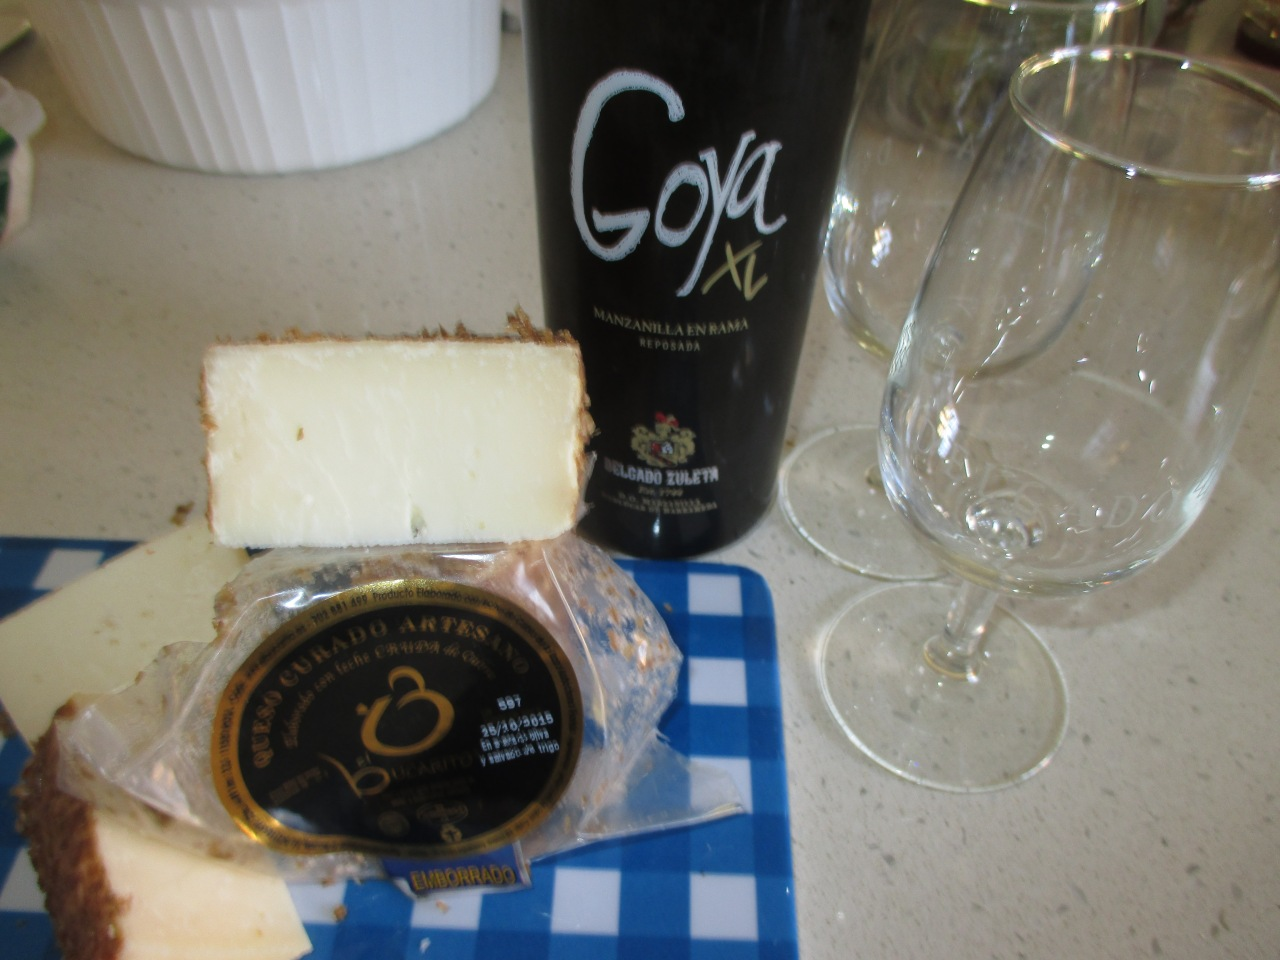 Discover Sherry Moment: La Goya XL